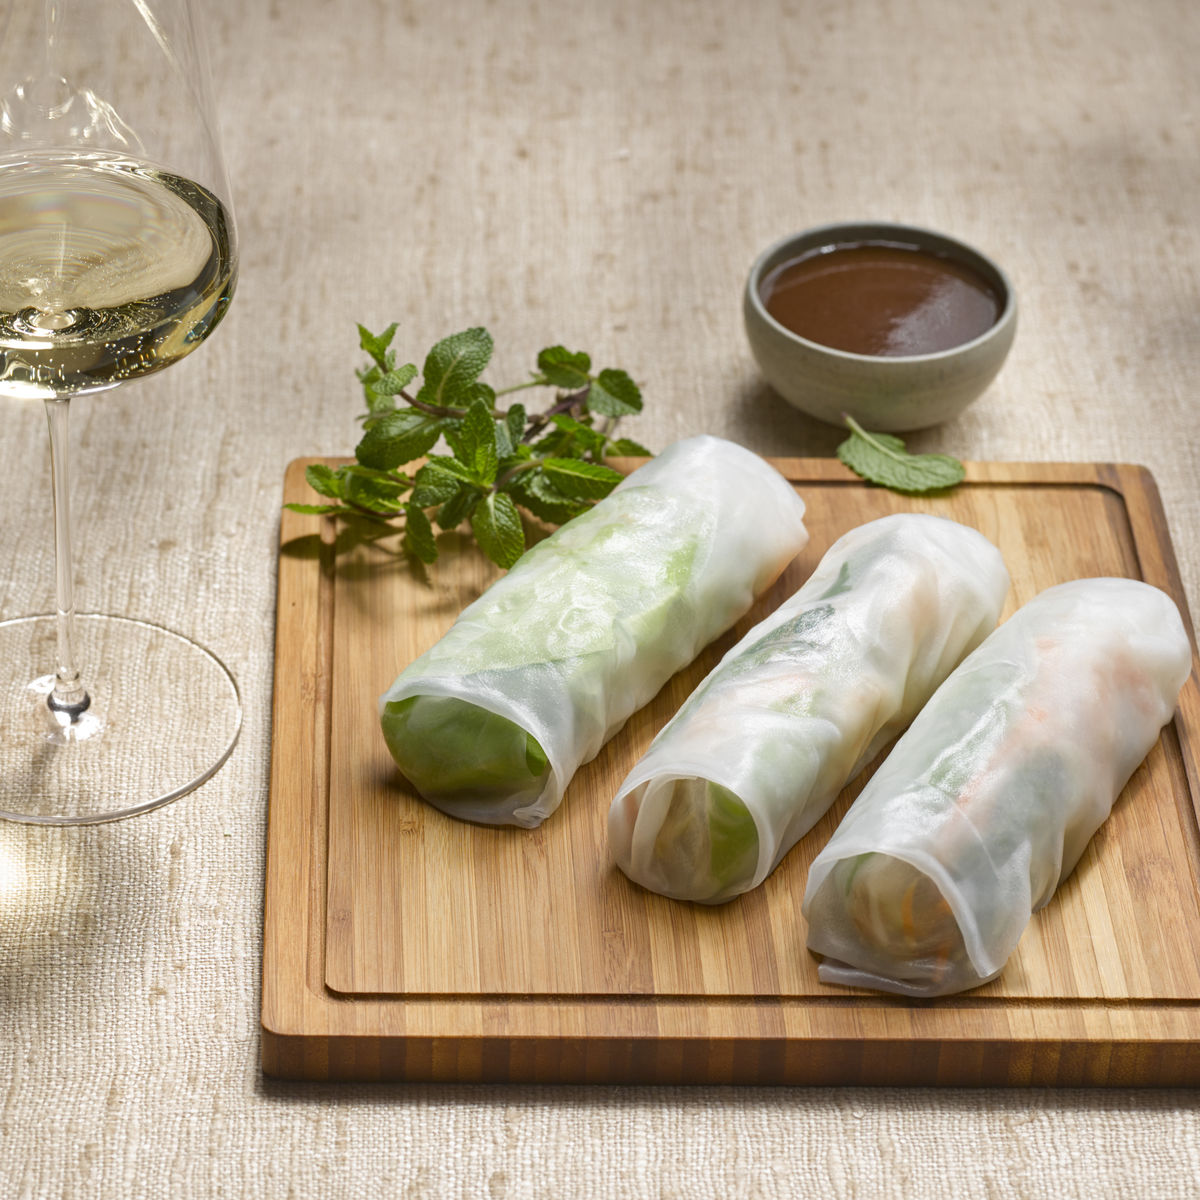 The picture shows raw spring onion and a glass of white wine,